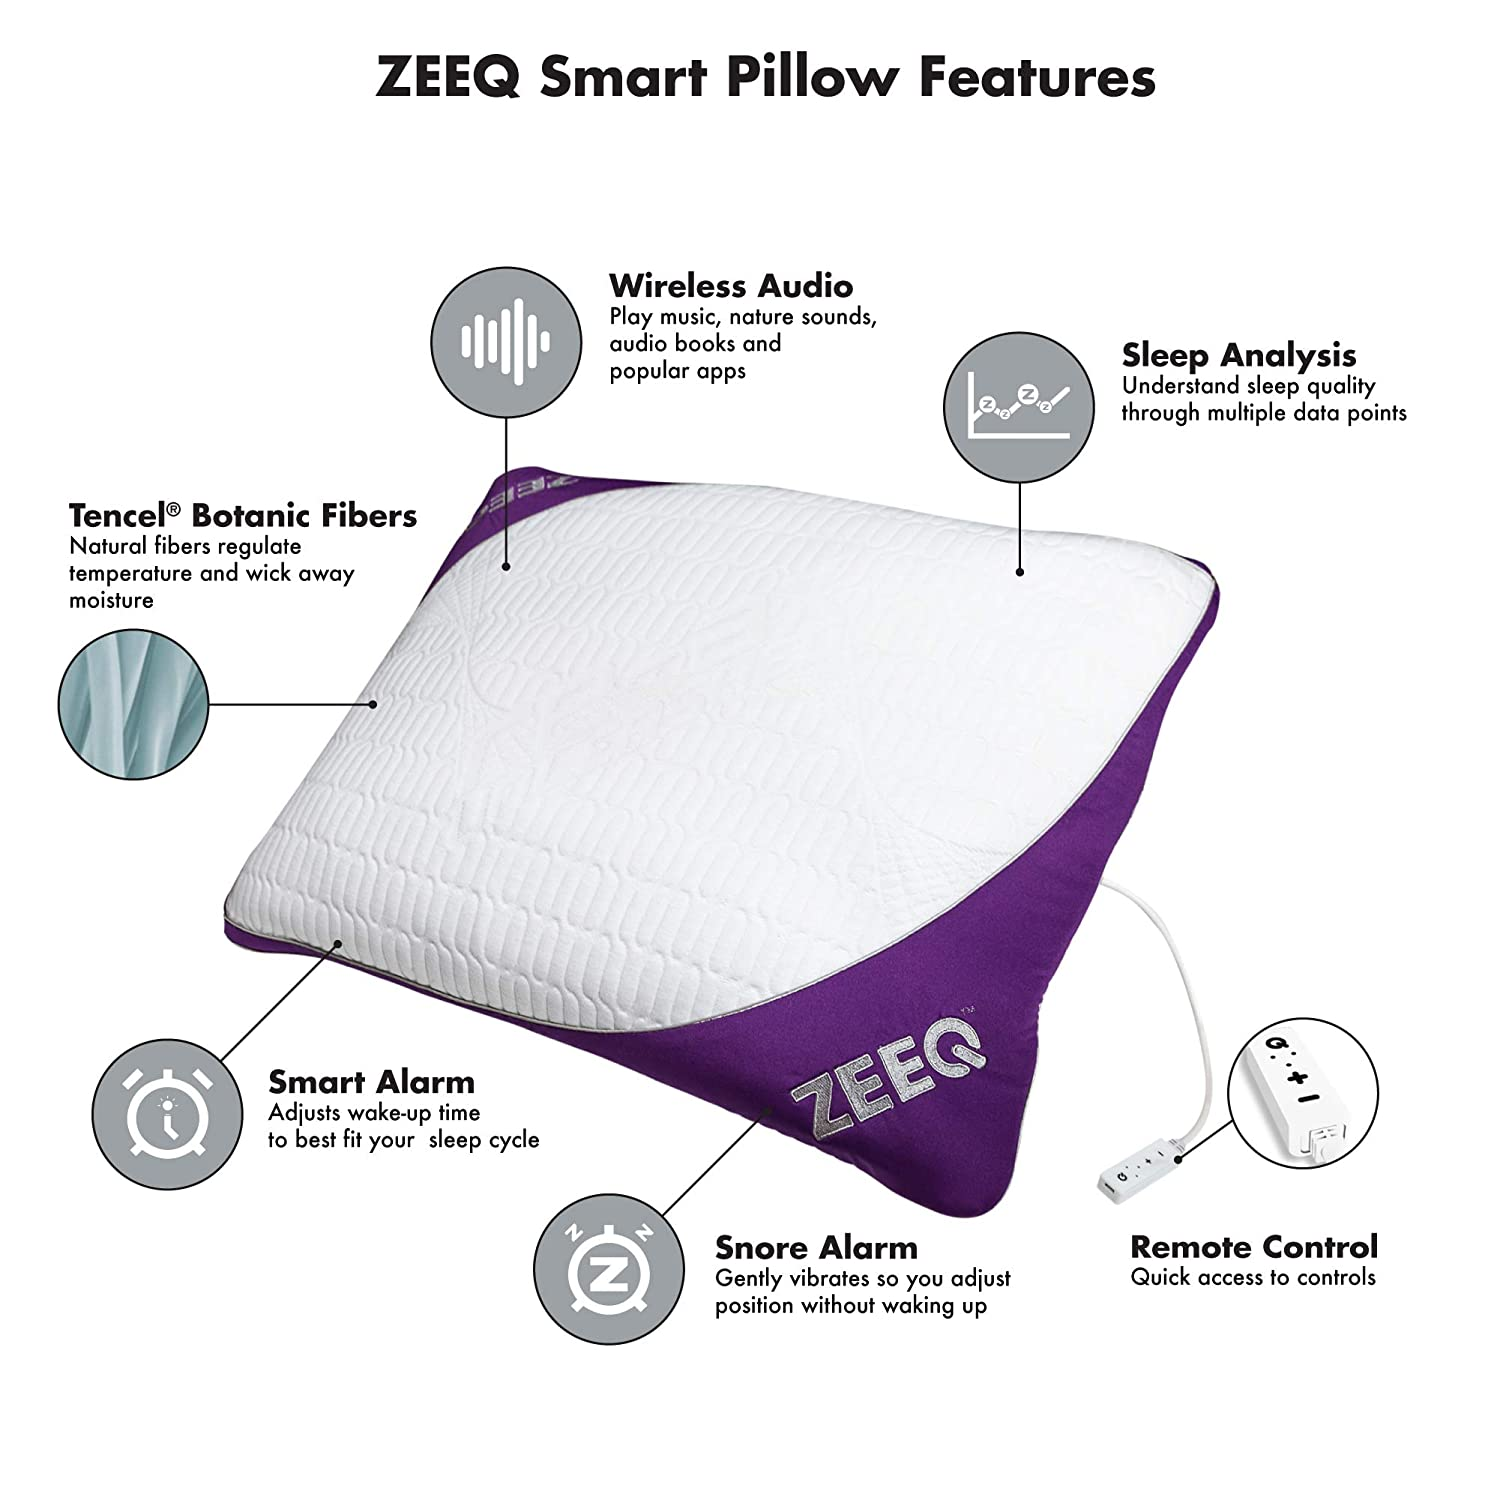 ZEEQ Smart Pillow - Track Sleep, Stream Audio, Smart Home Connected for Home Automation (ZEEQ Smart Pillow)